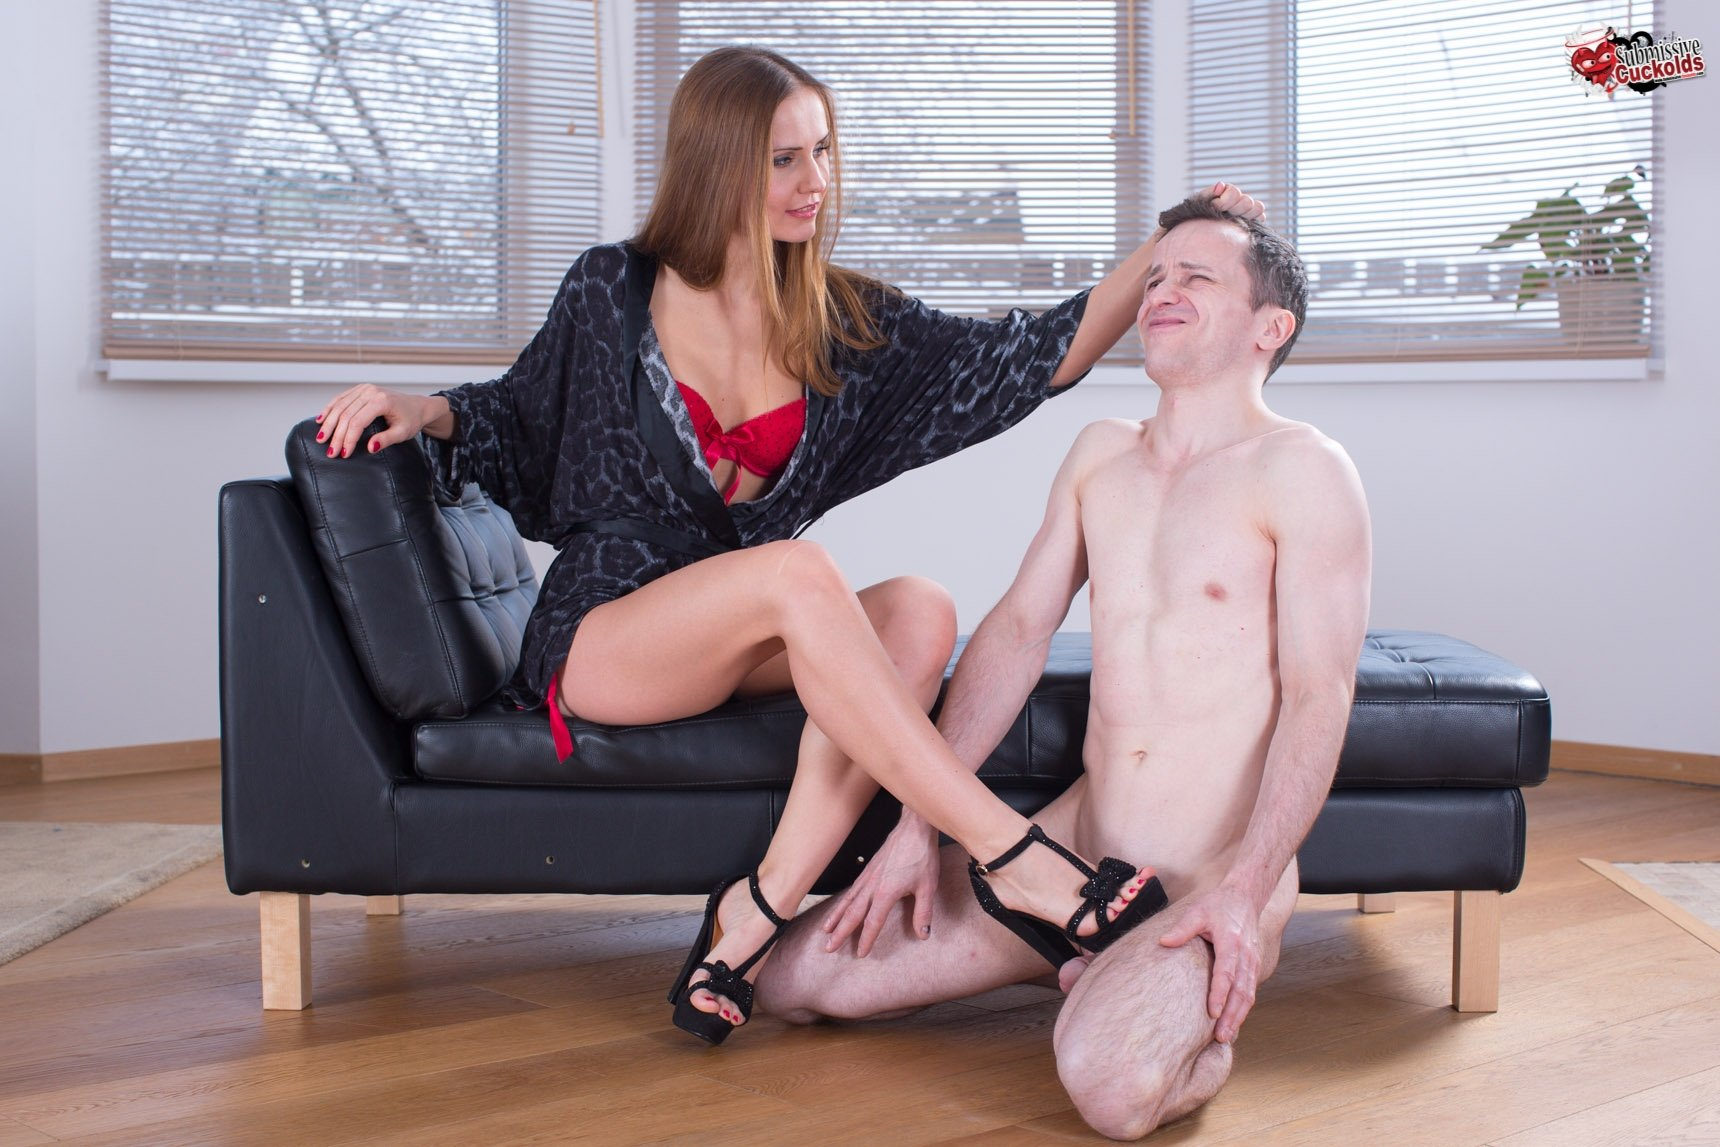 Cuckold submissive slave husband and his femdom hotwife